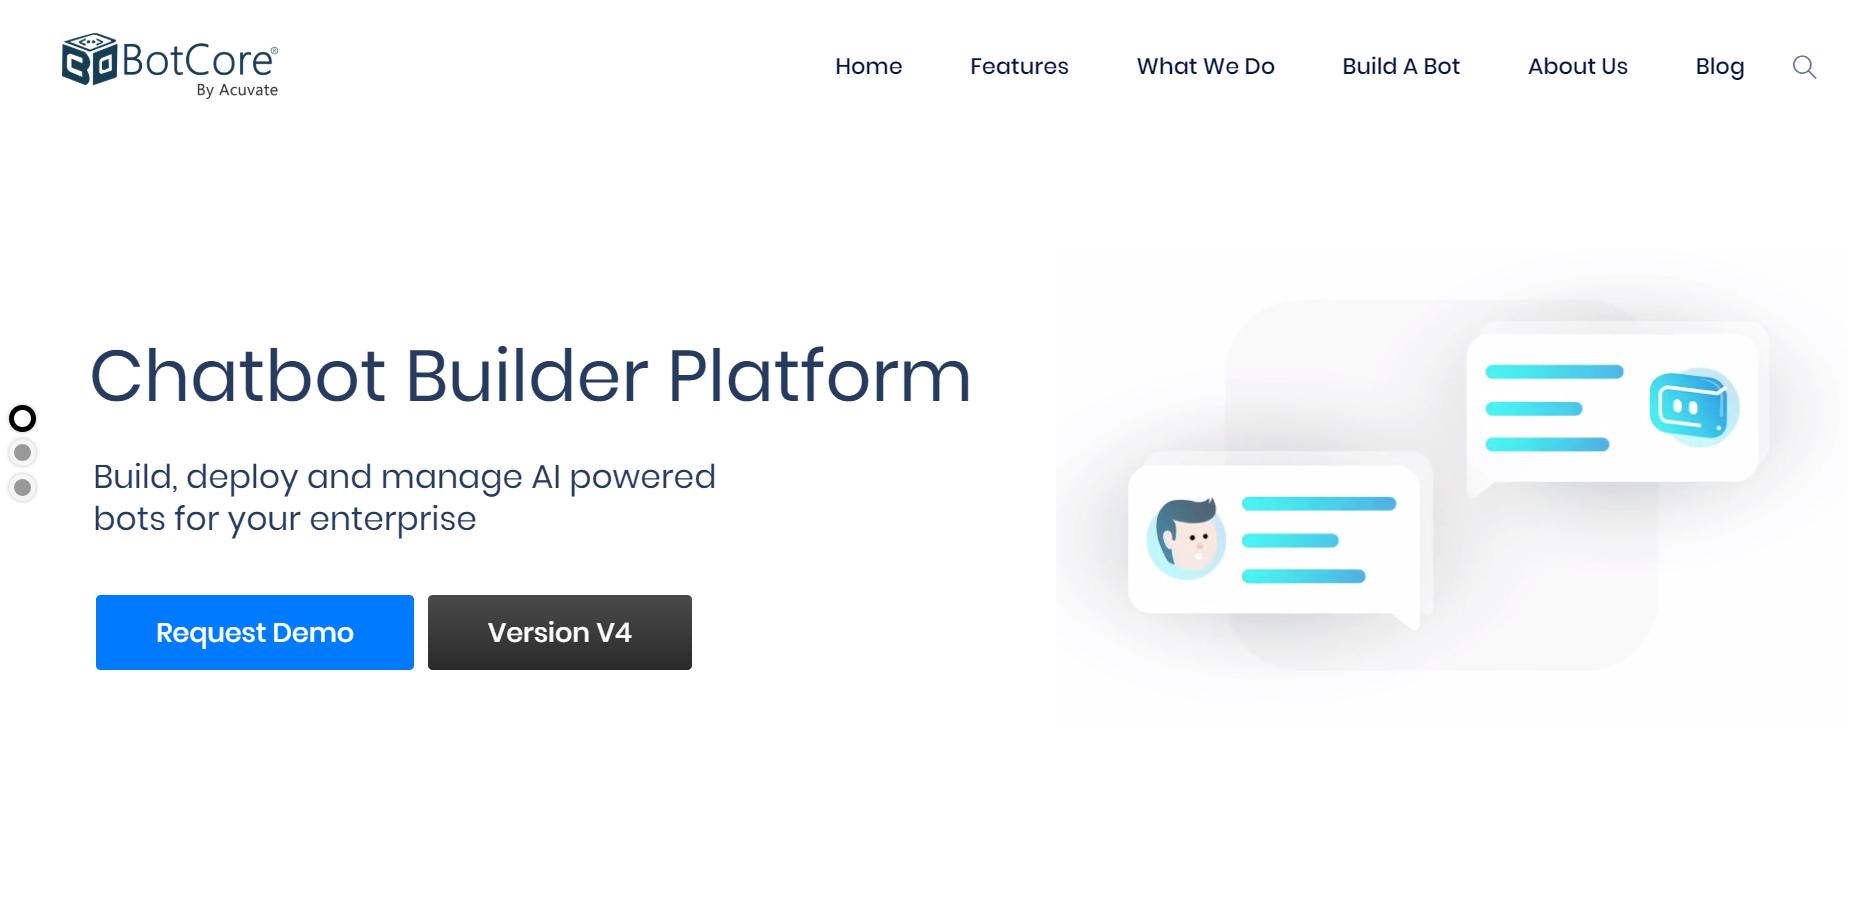 best chatbot builders - BotCore